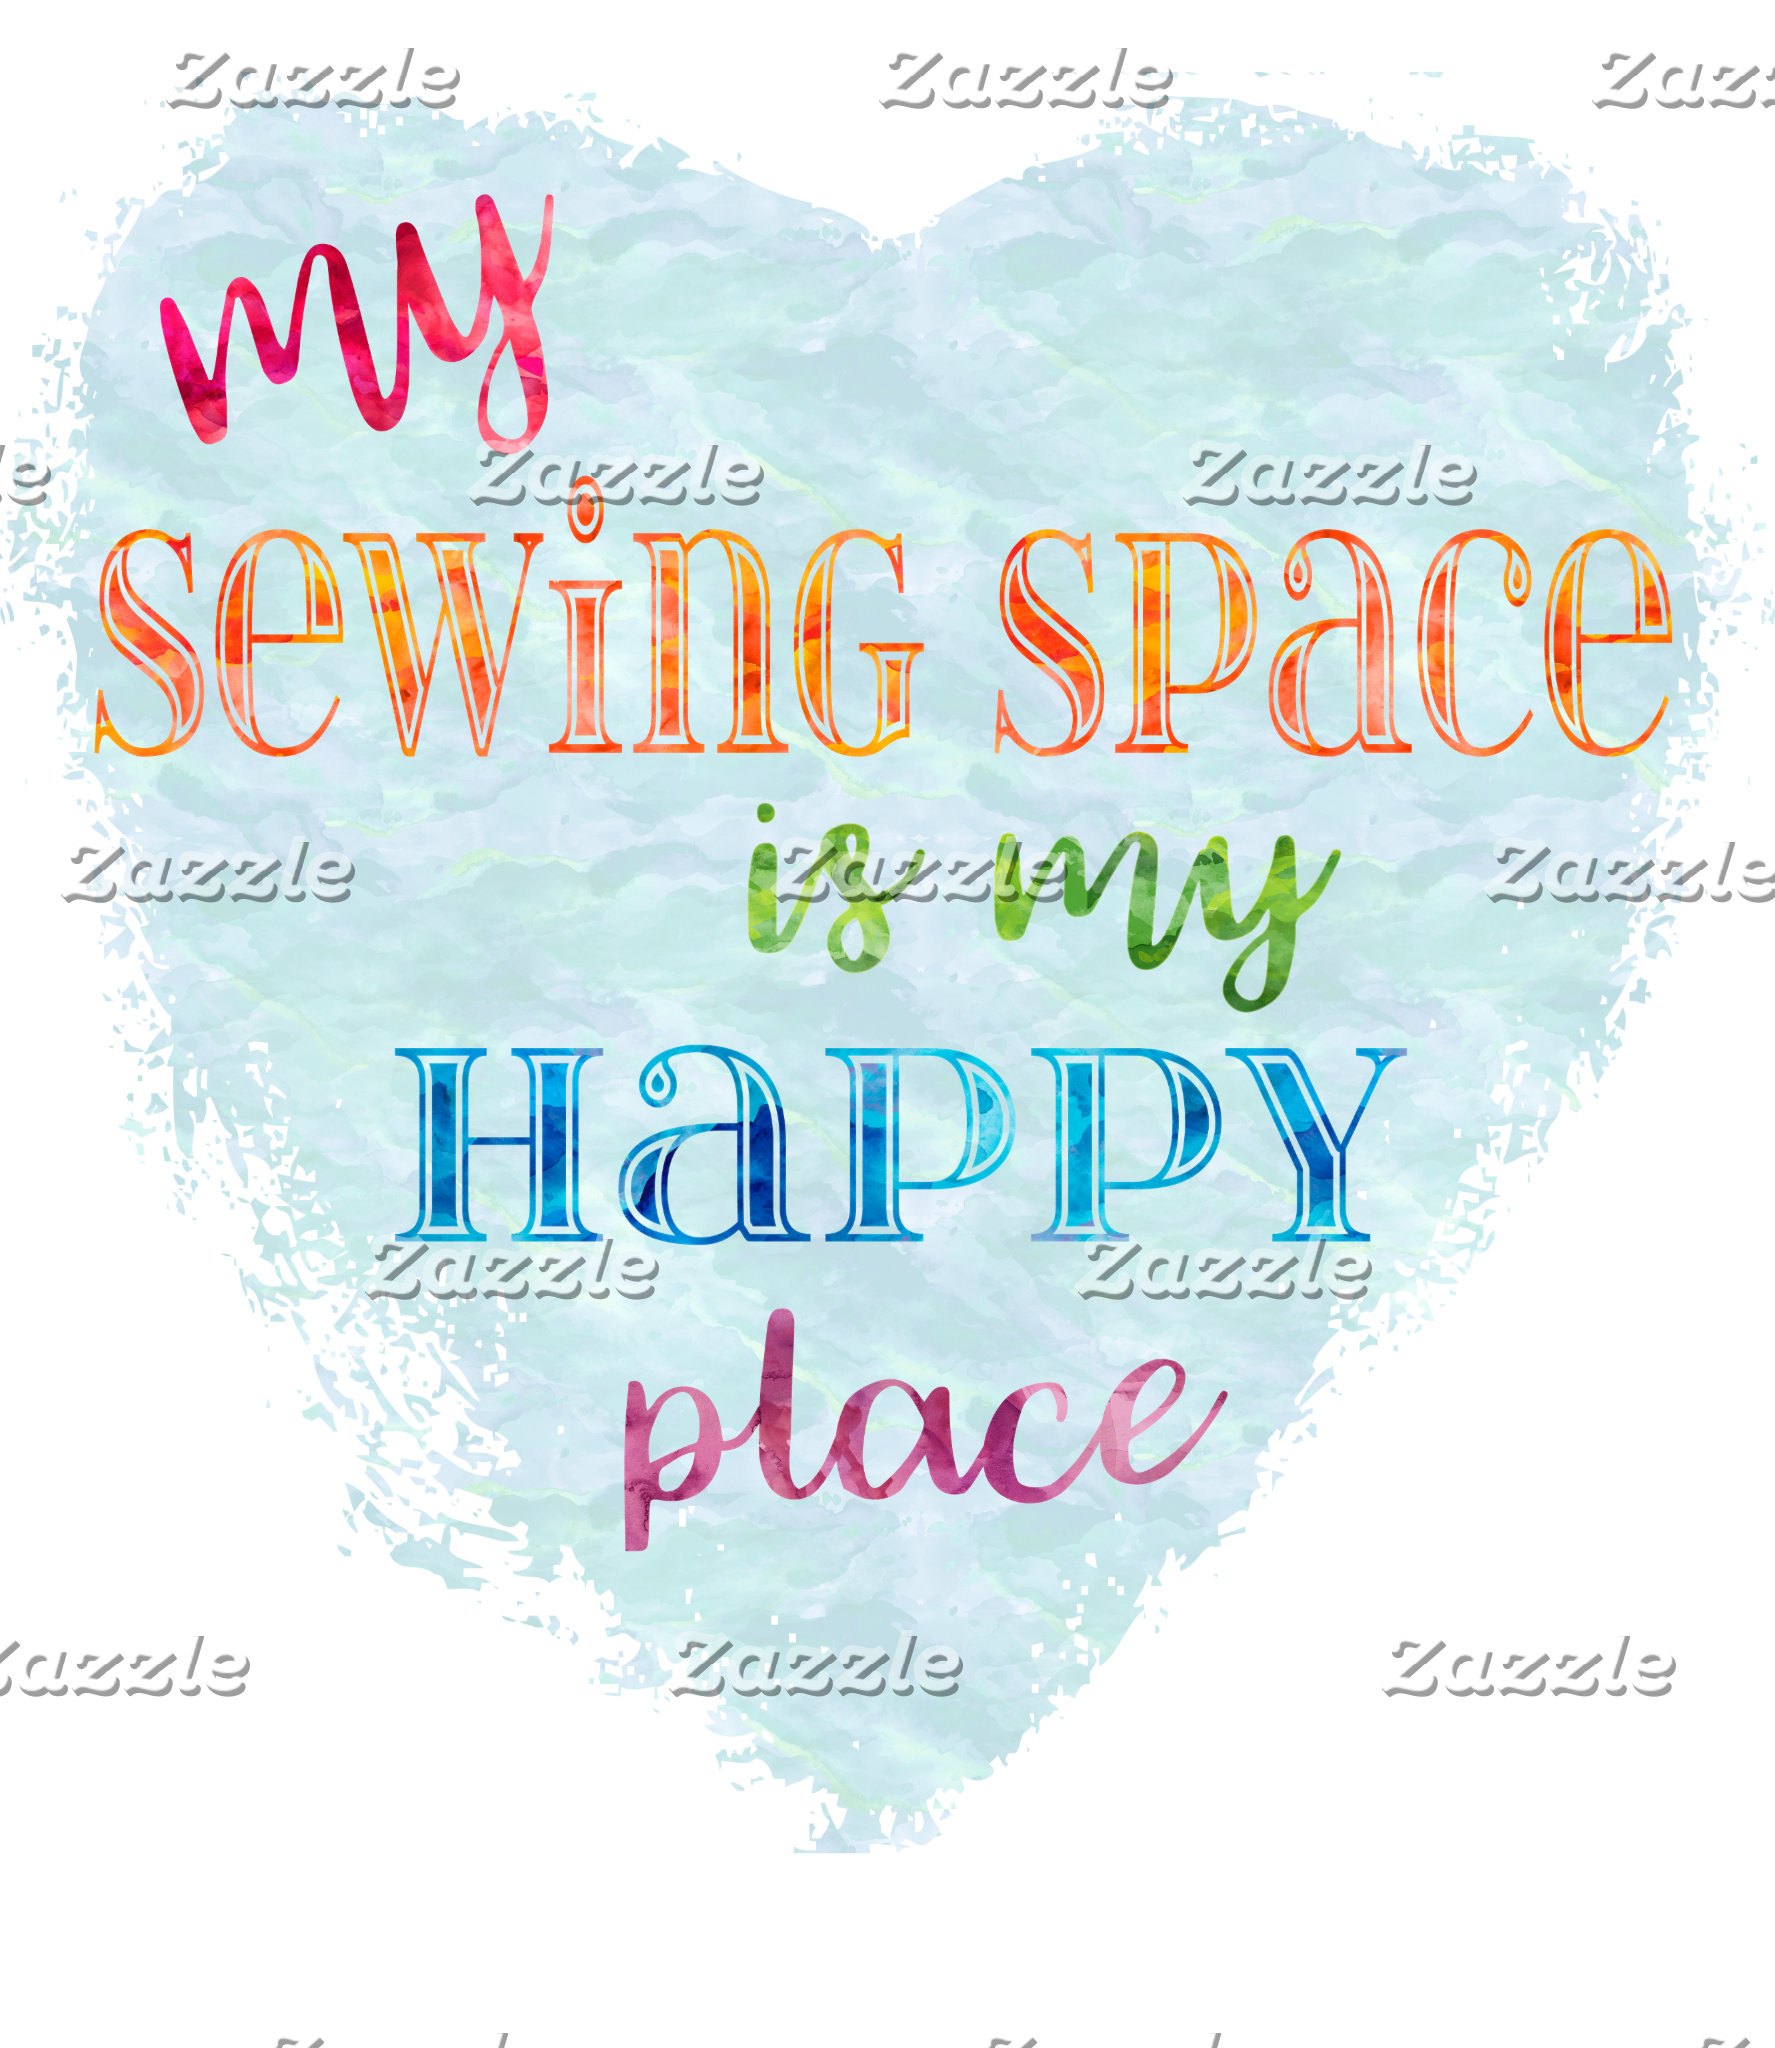 My Sewing Space is my Happy Place